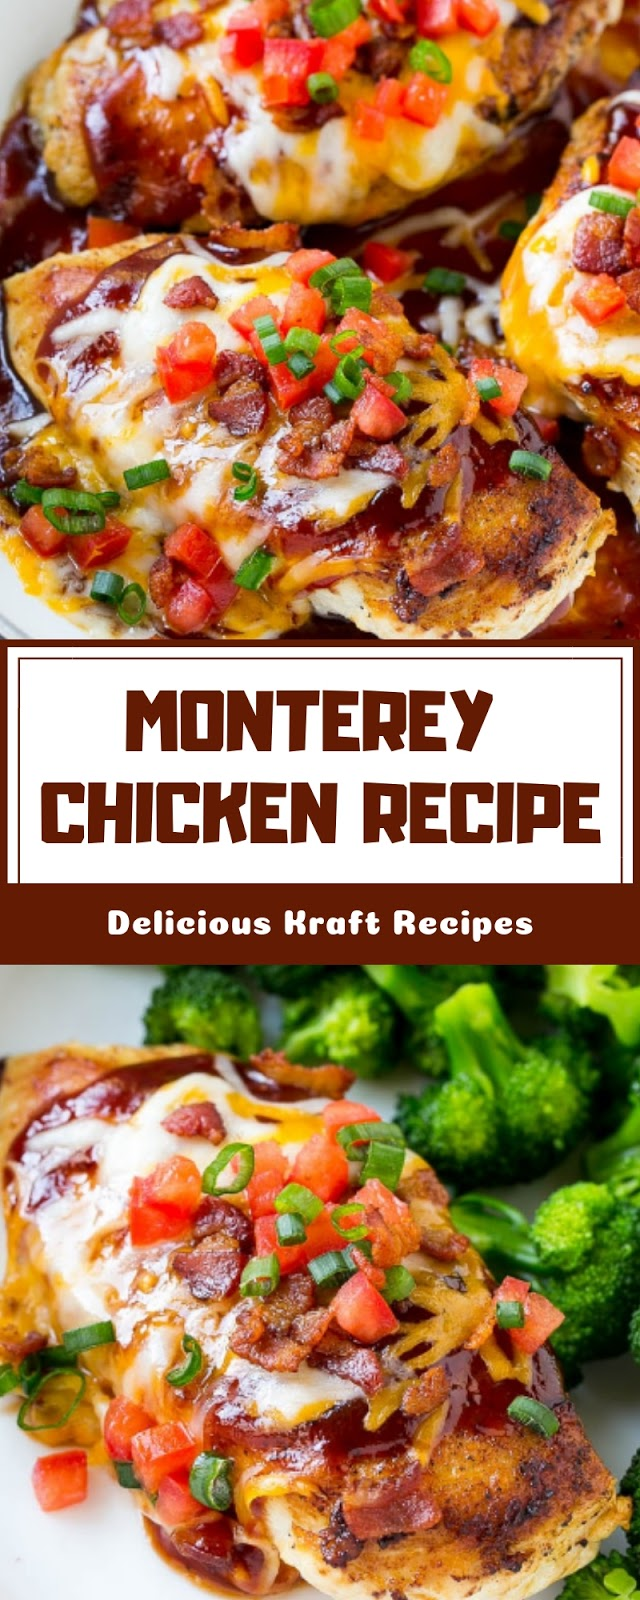 MONTEREY CHICKEN RECIPE